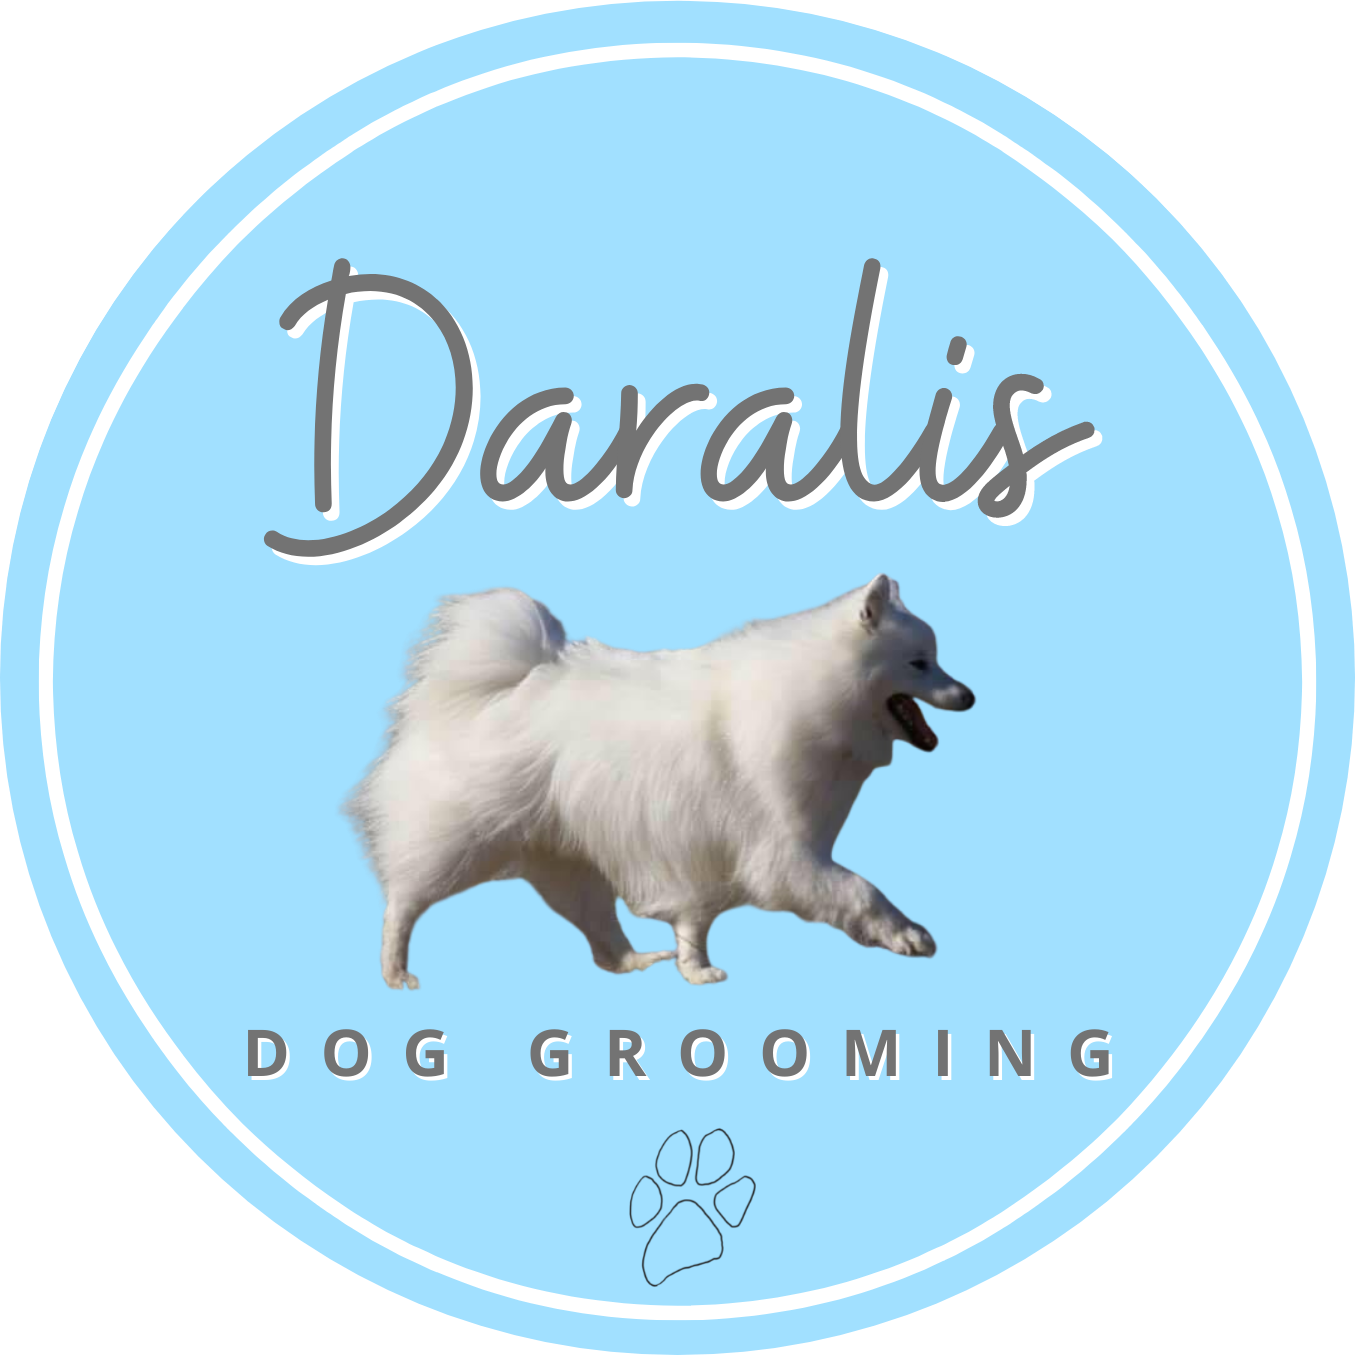 Daralis Dog Grooming (the new name for Four Paws)